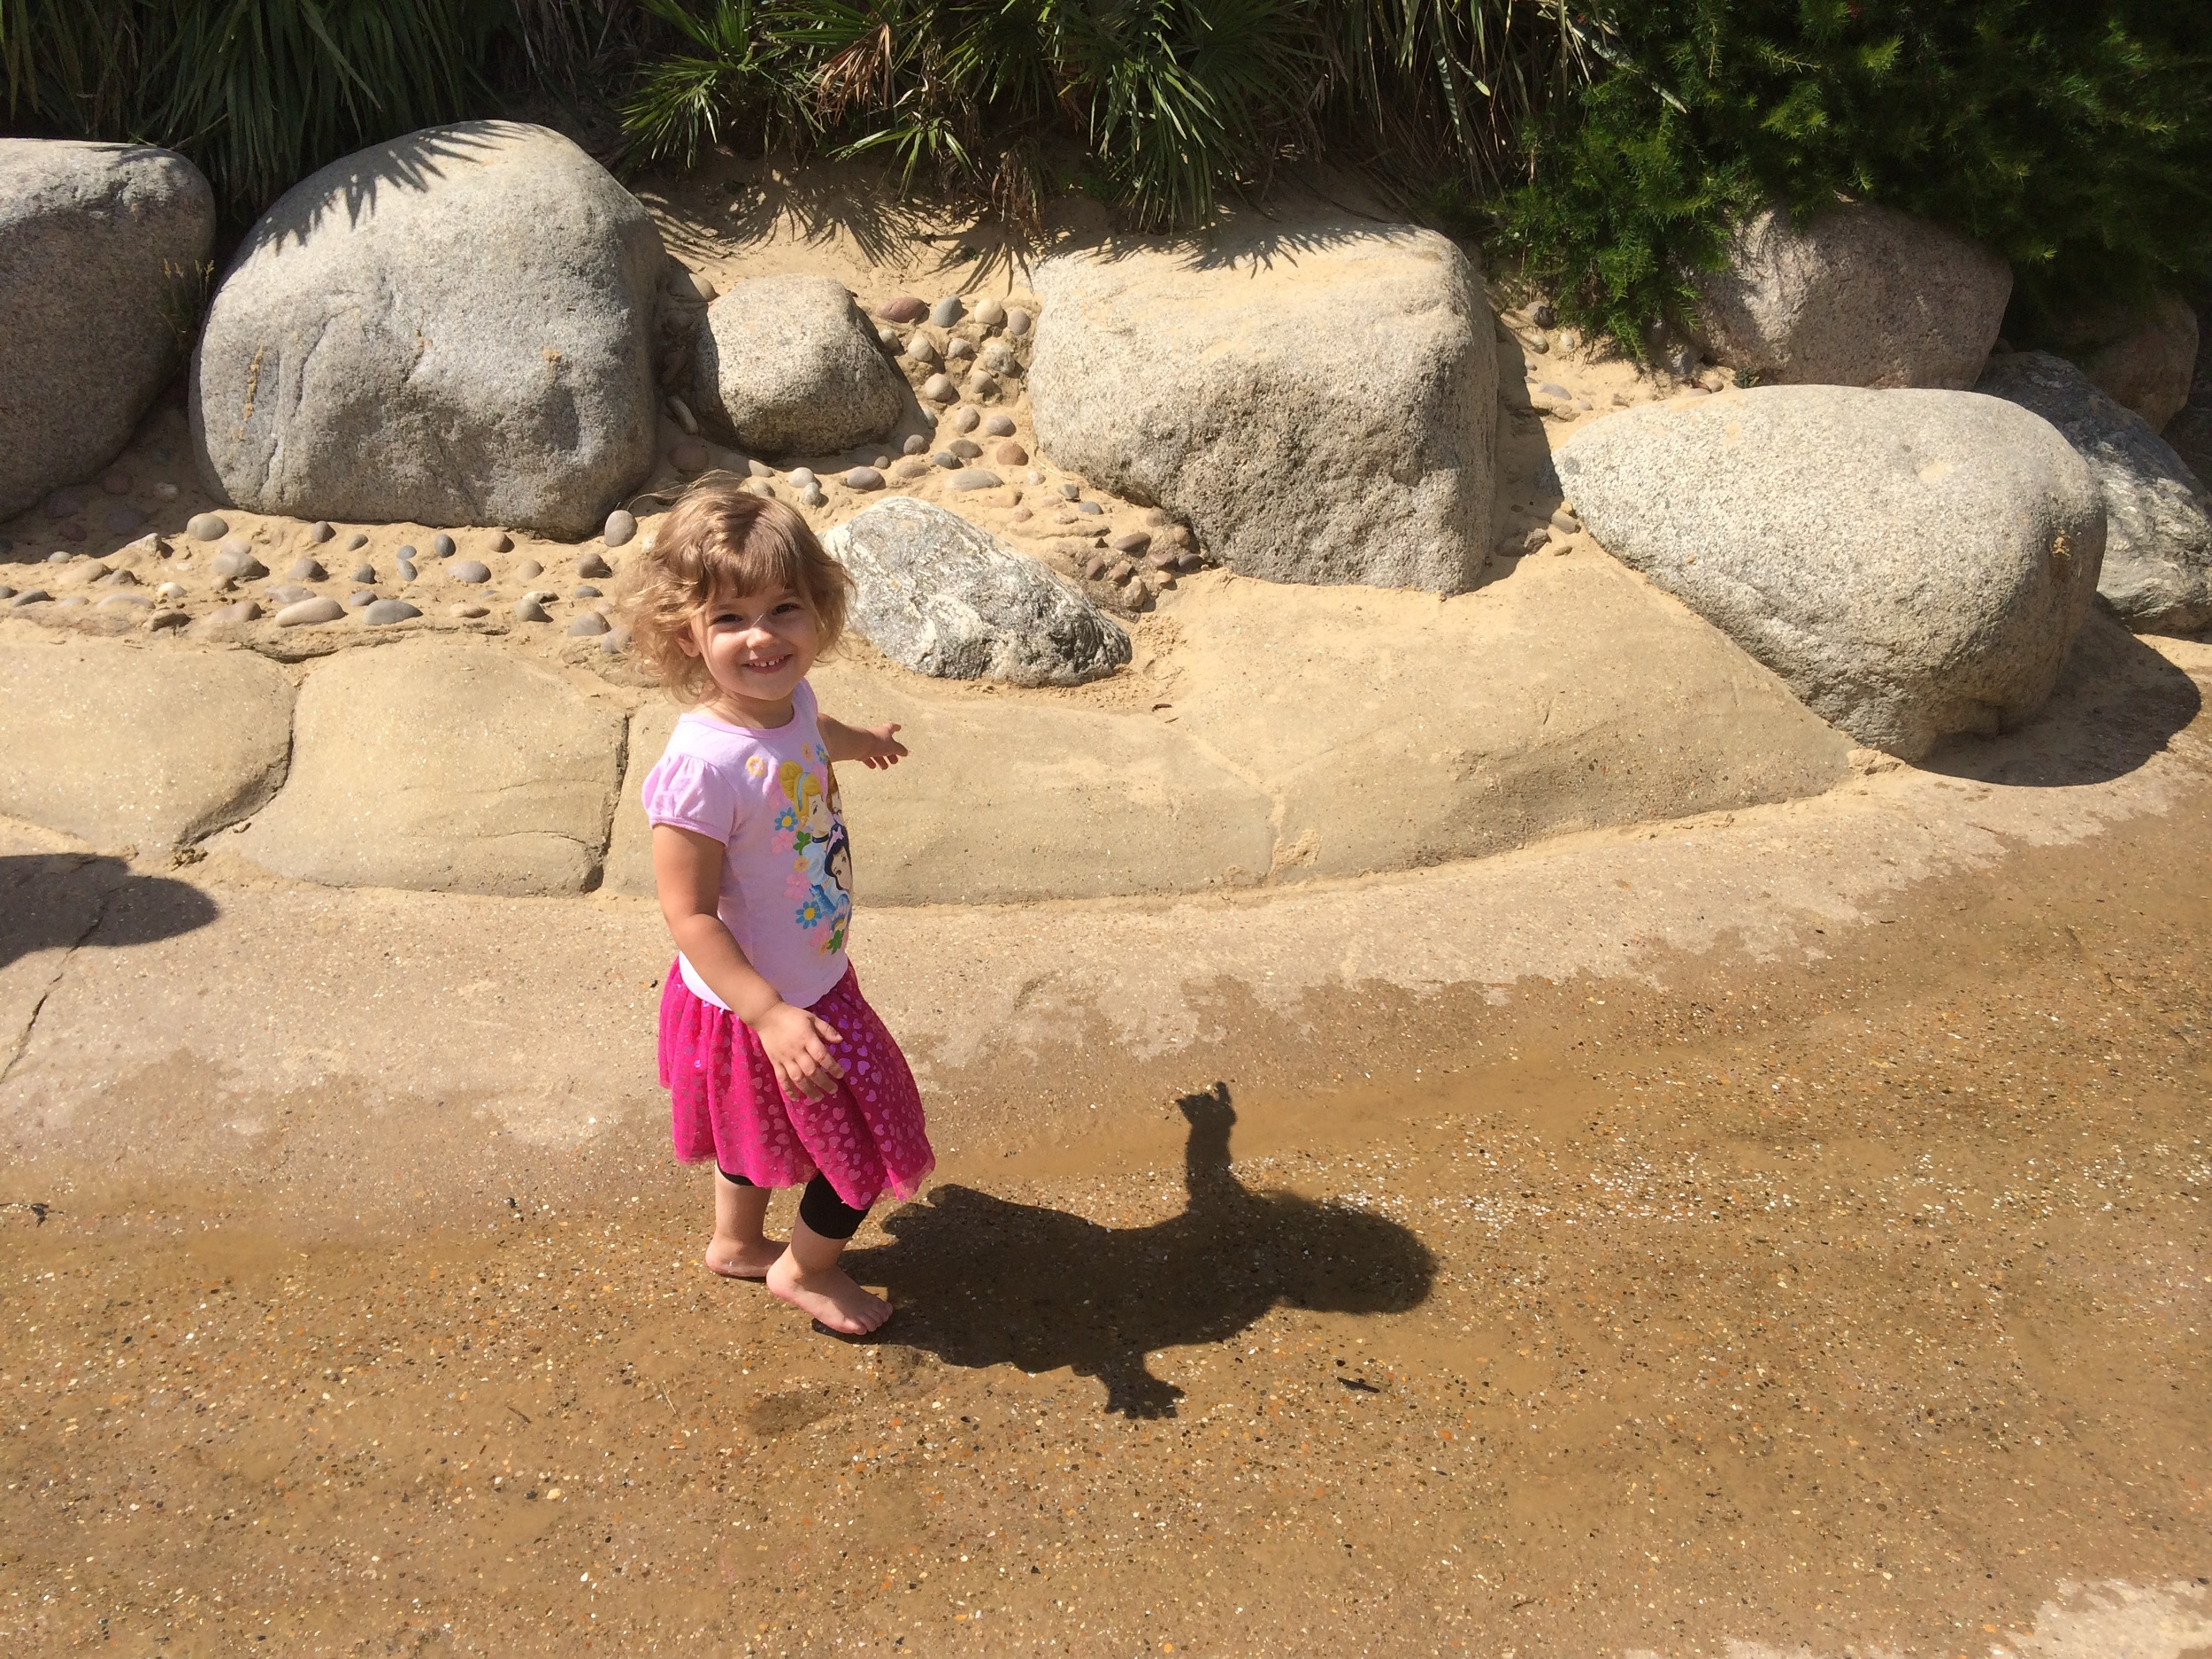 Hannah's favorite section...a bit of water a bit of sand...perfection!